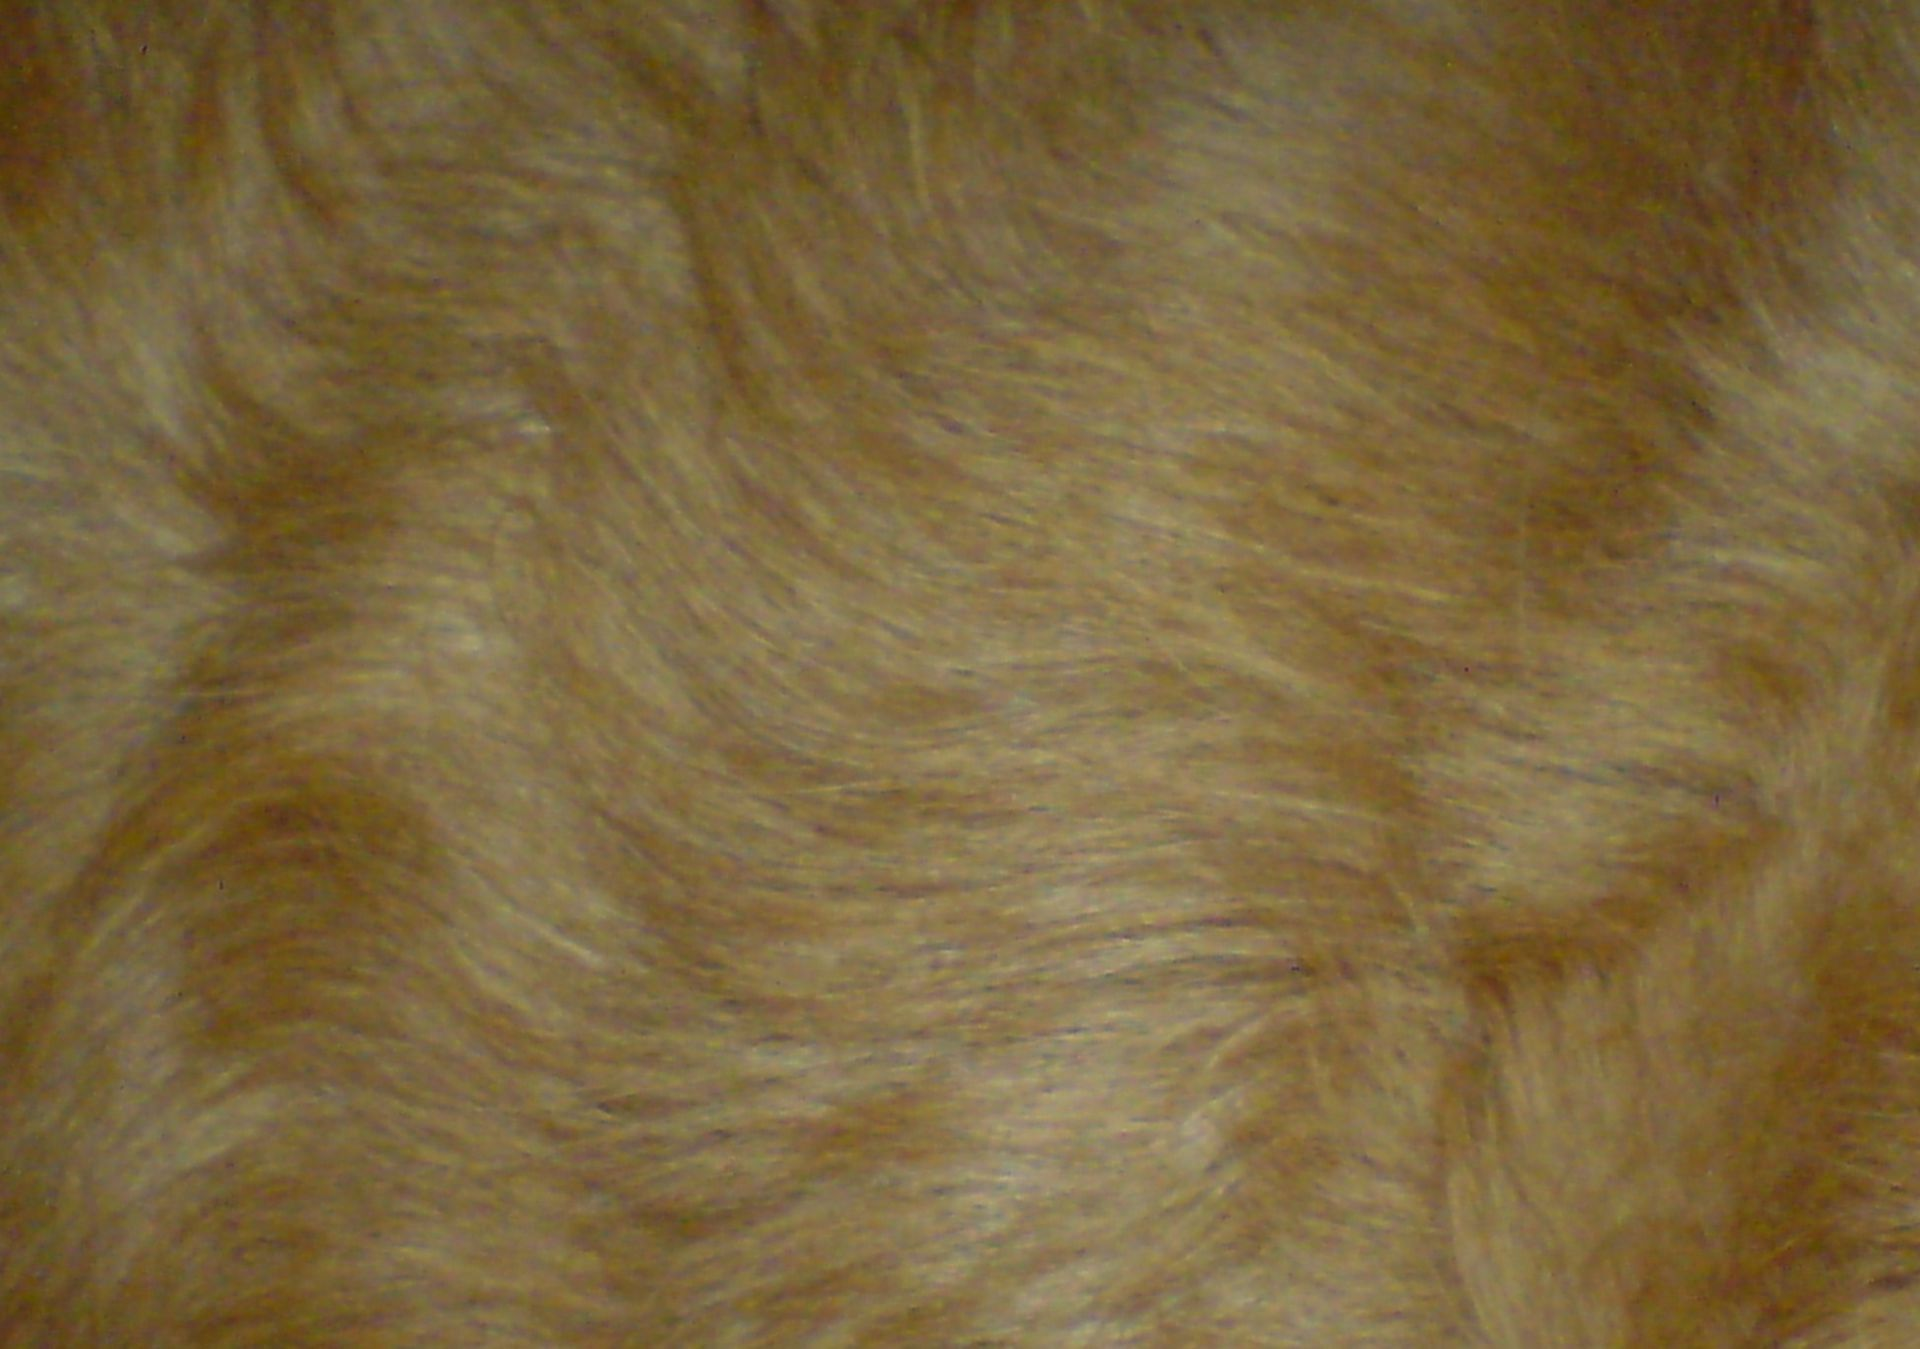 Veterinary Medicine: Fur Coat of a Dog